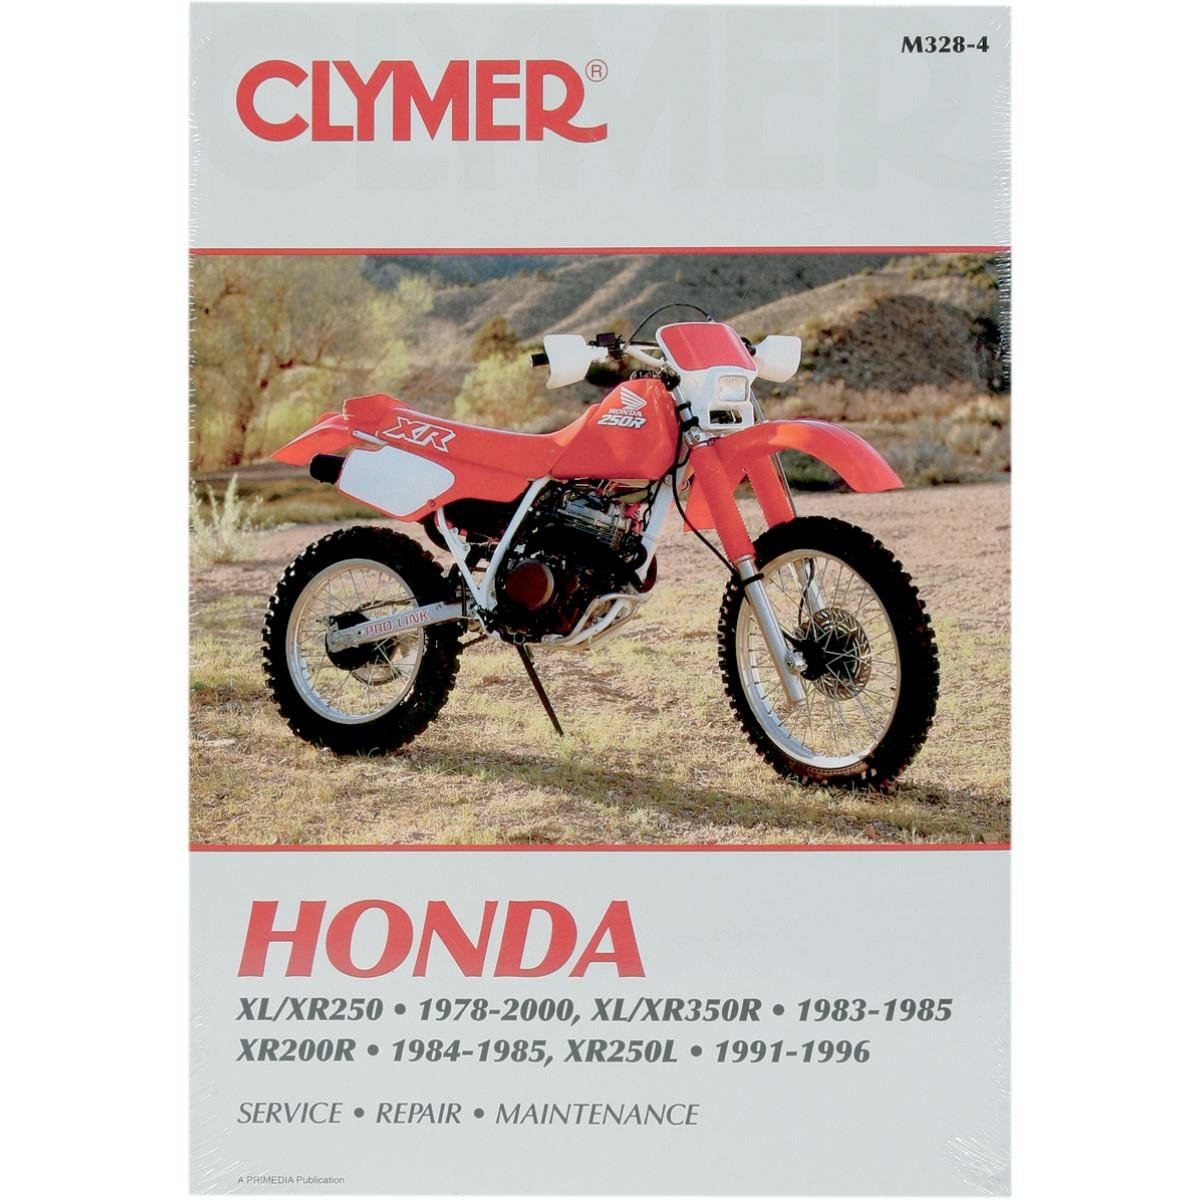 Amazon.com: Clymer Repair Manual for Honda XL XR 200 250 350 78-00:  Automotive